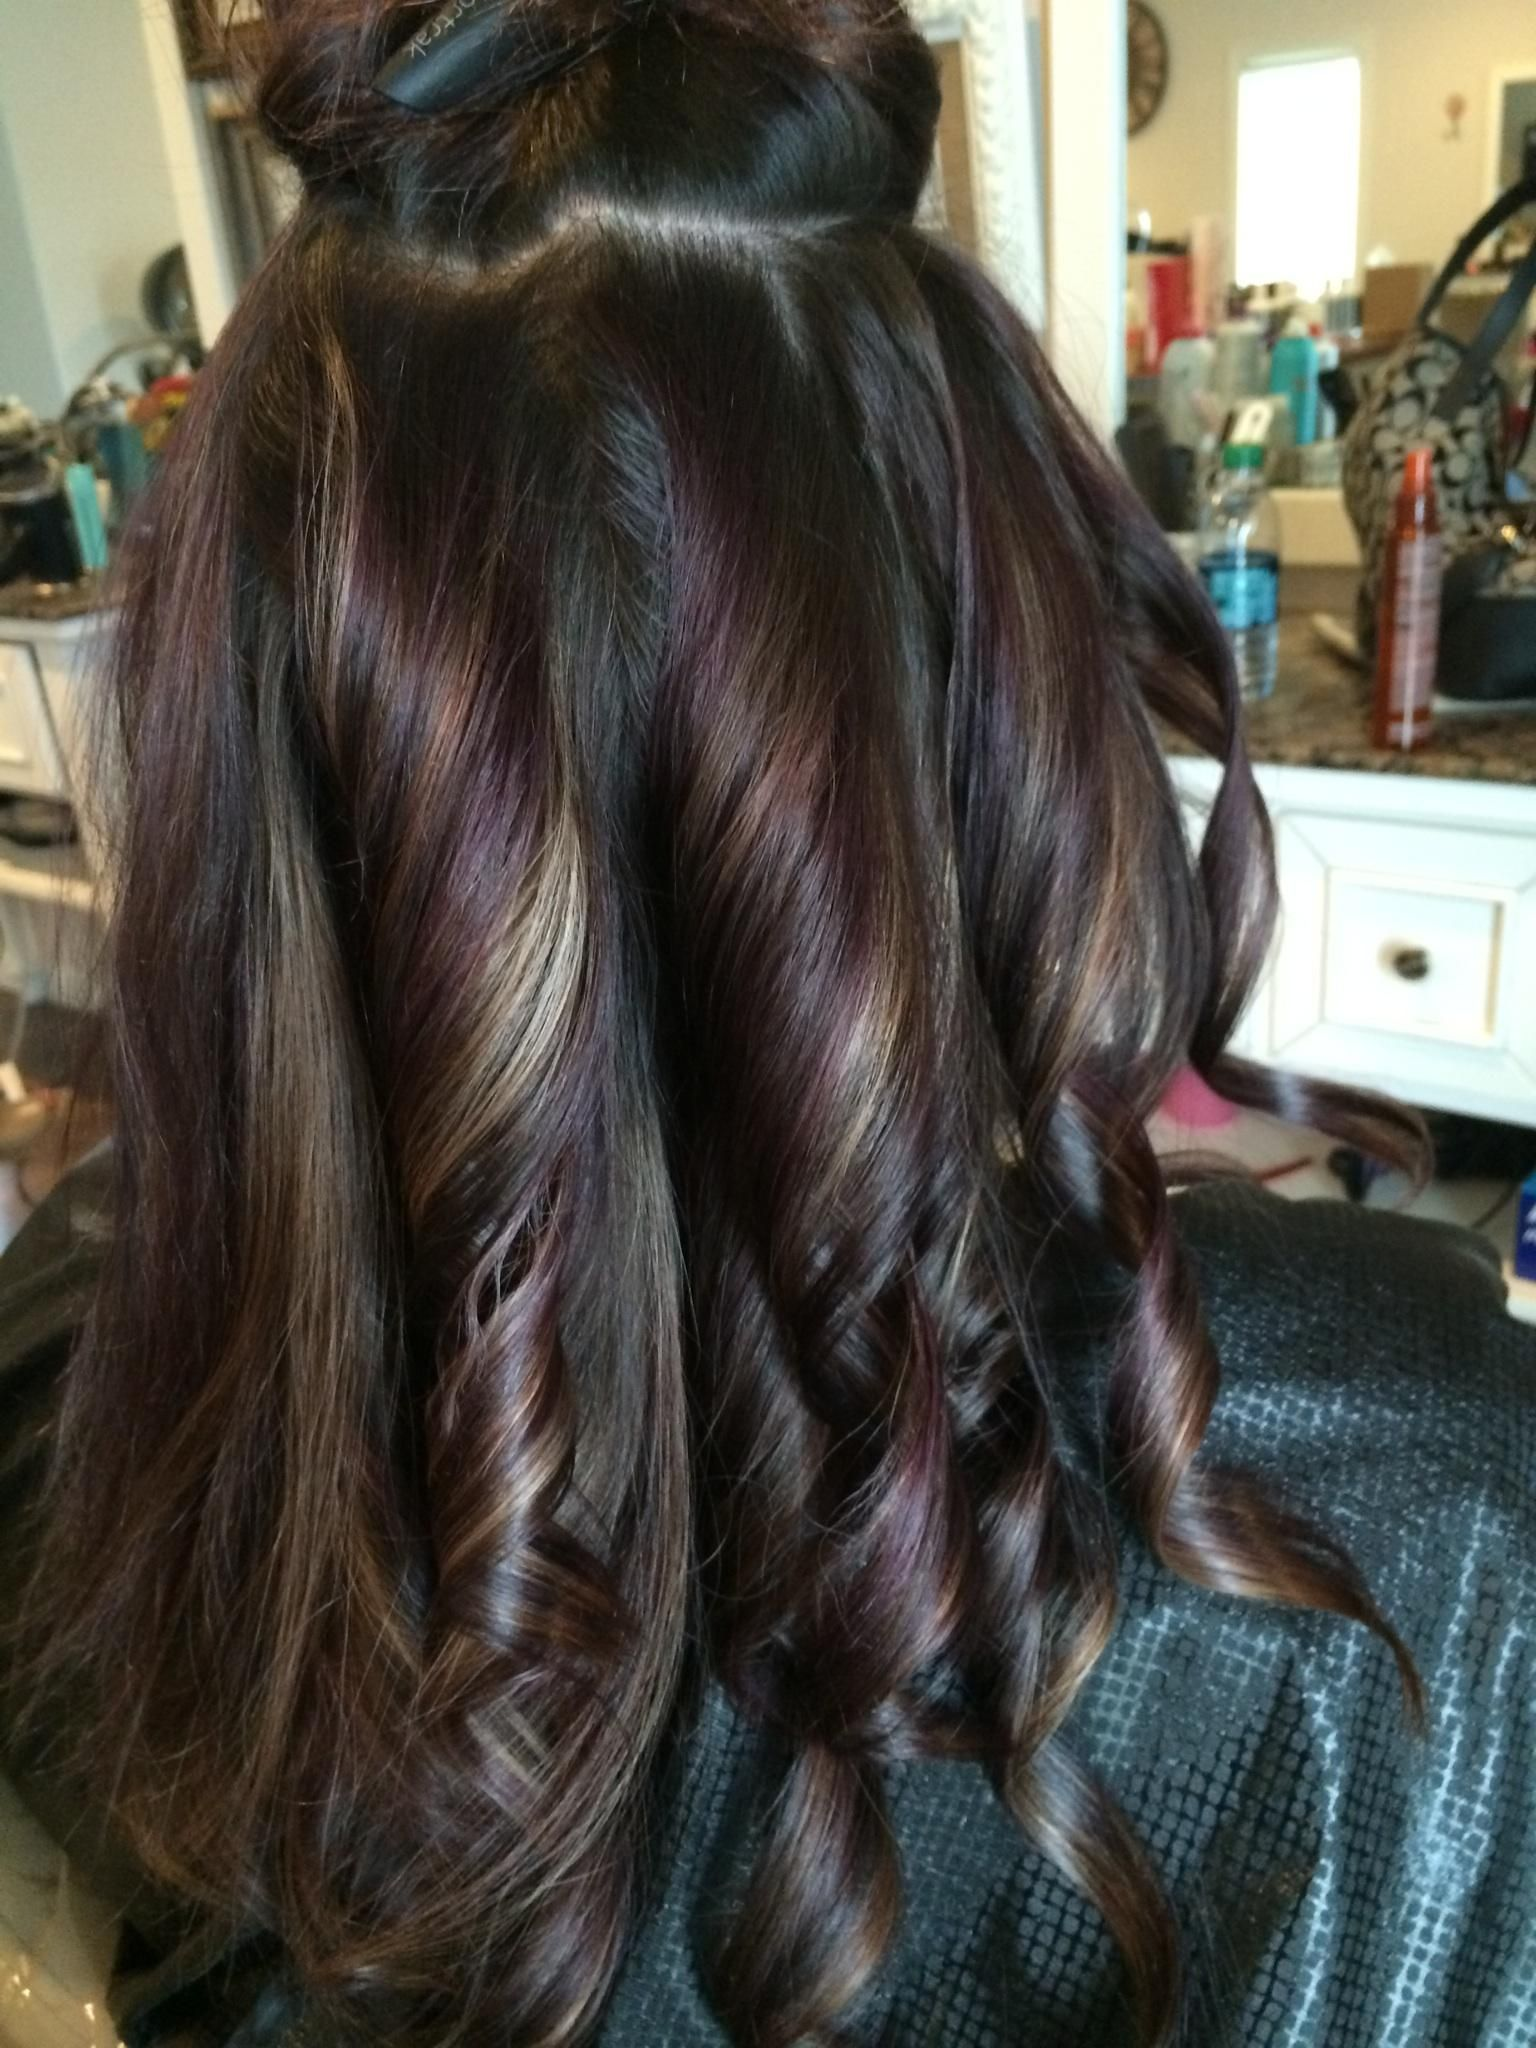 Hints of purple and caramel